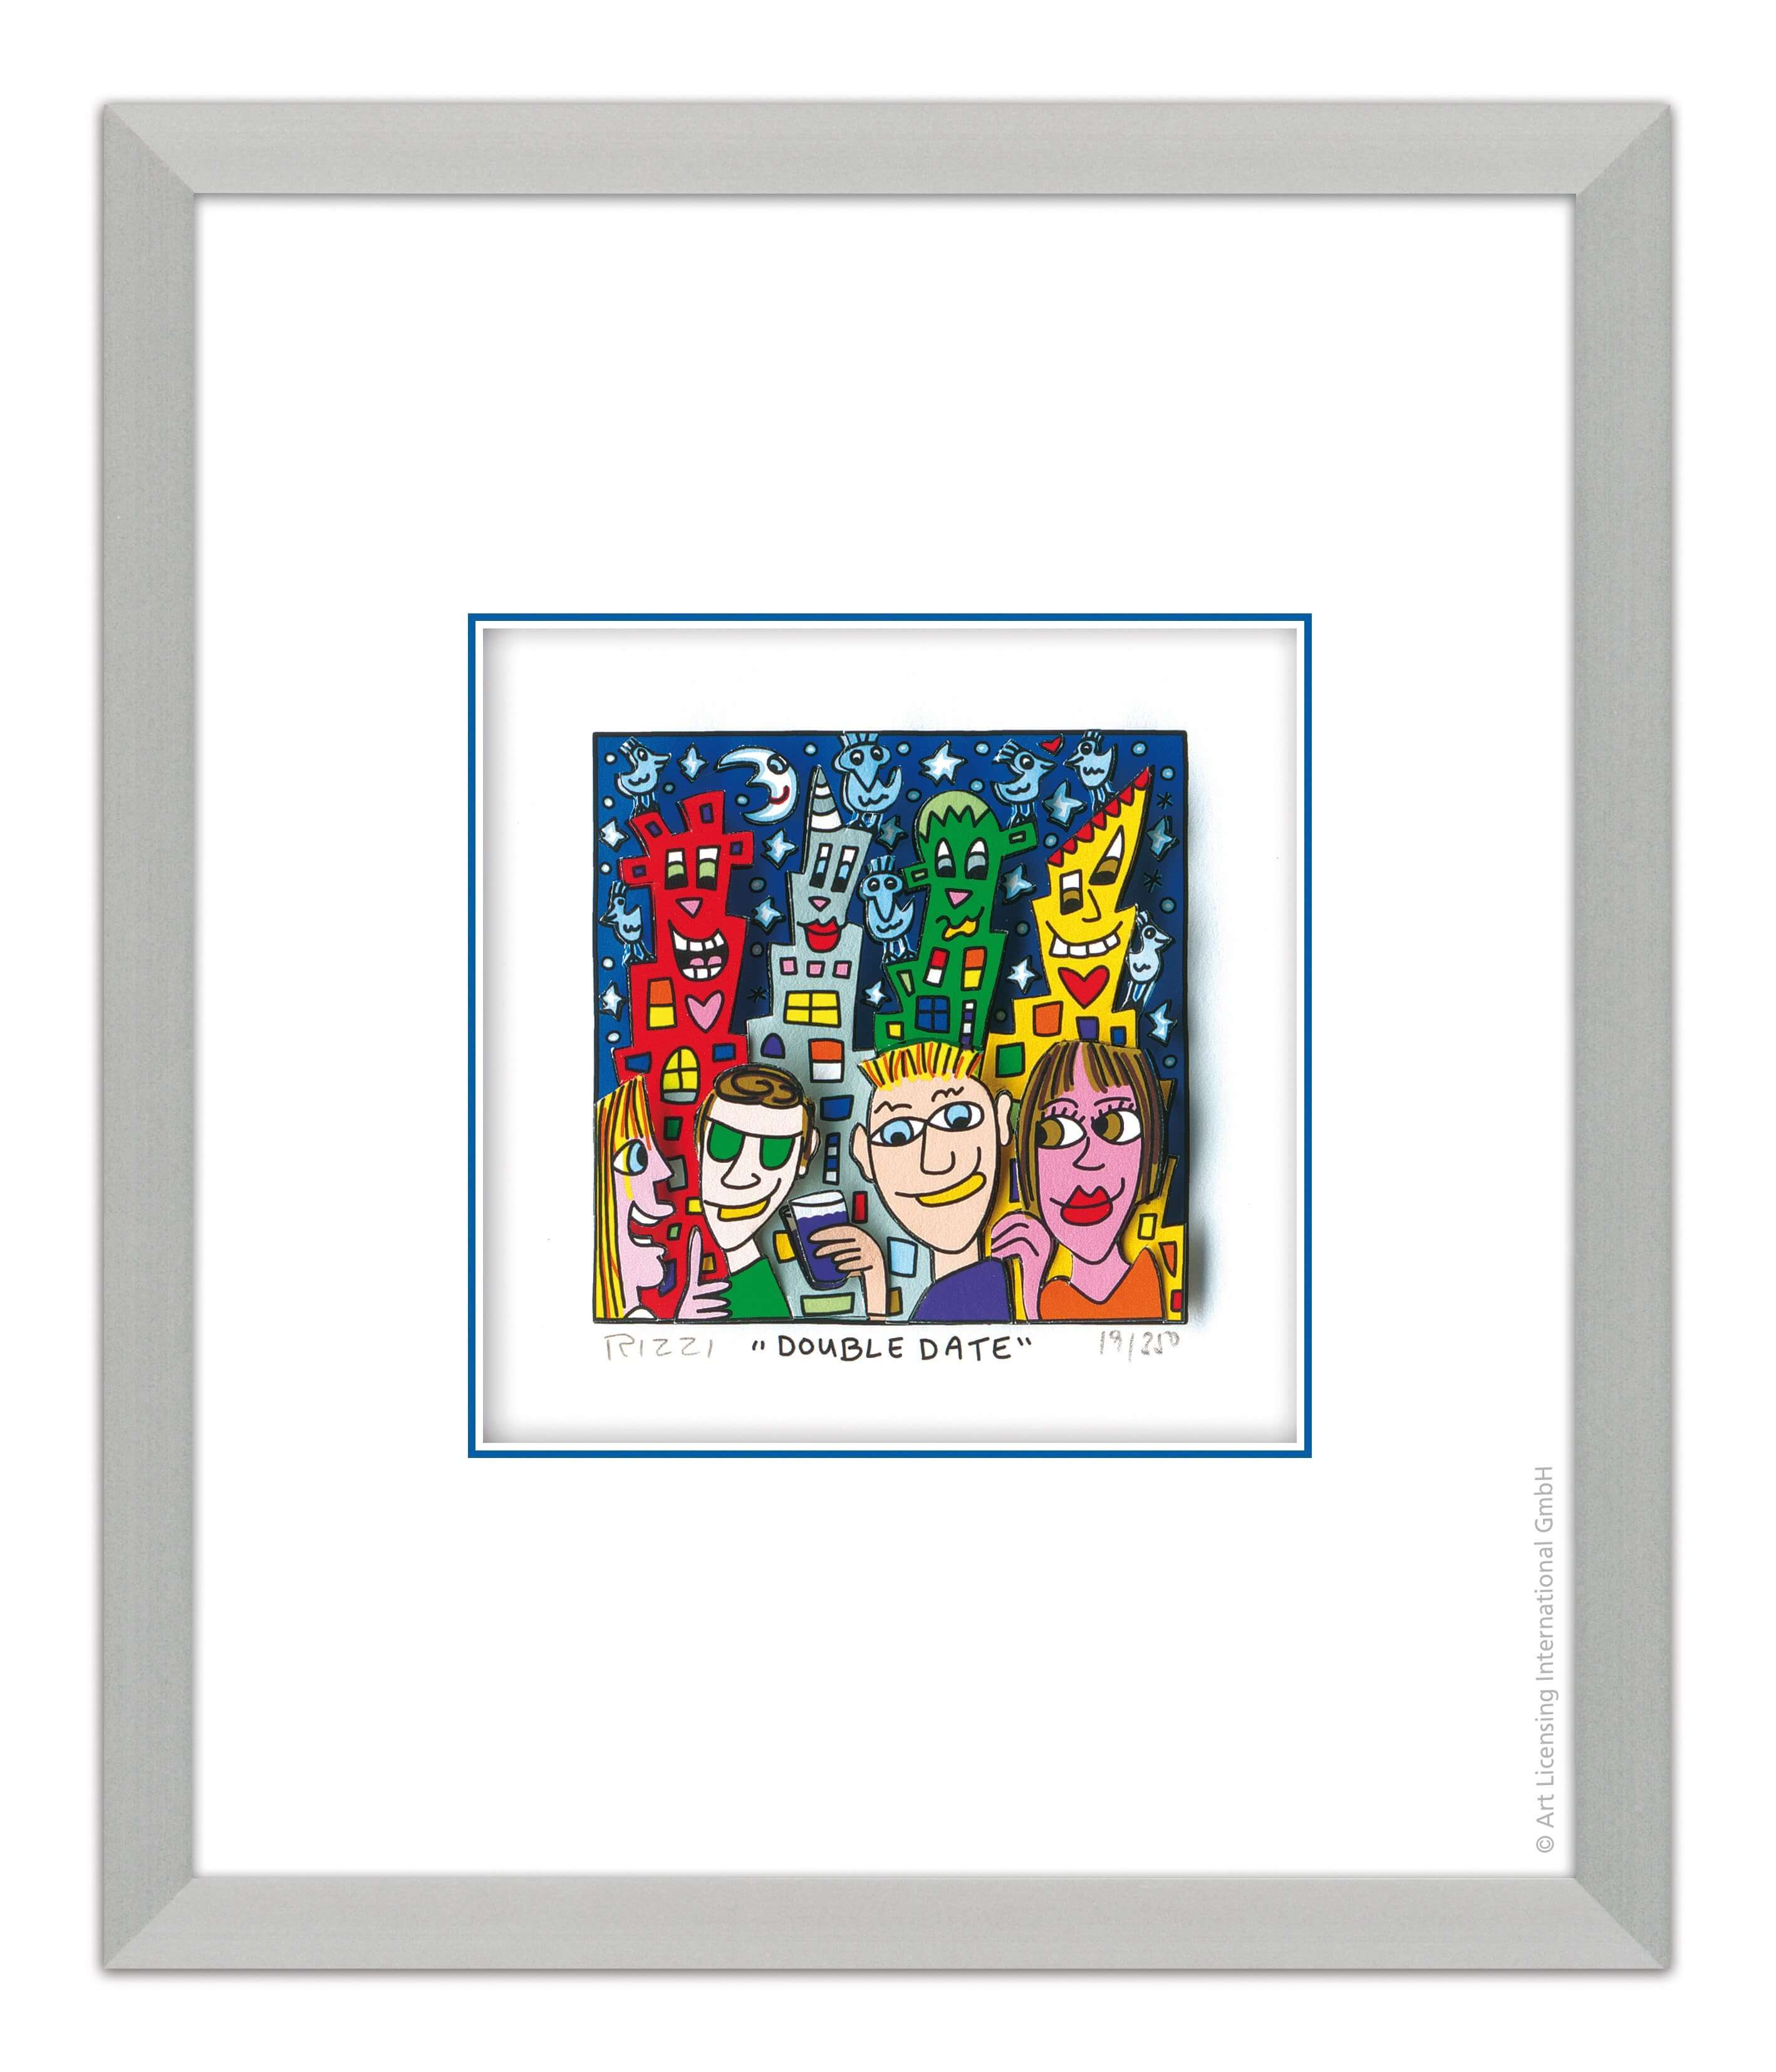 James Rizzi: Double Date